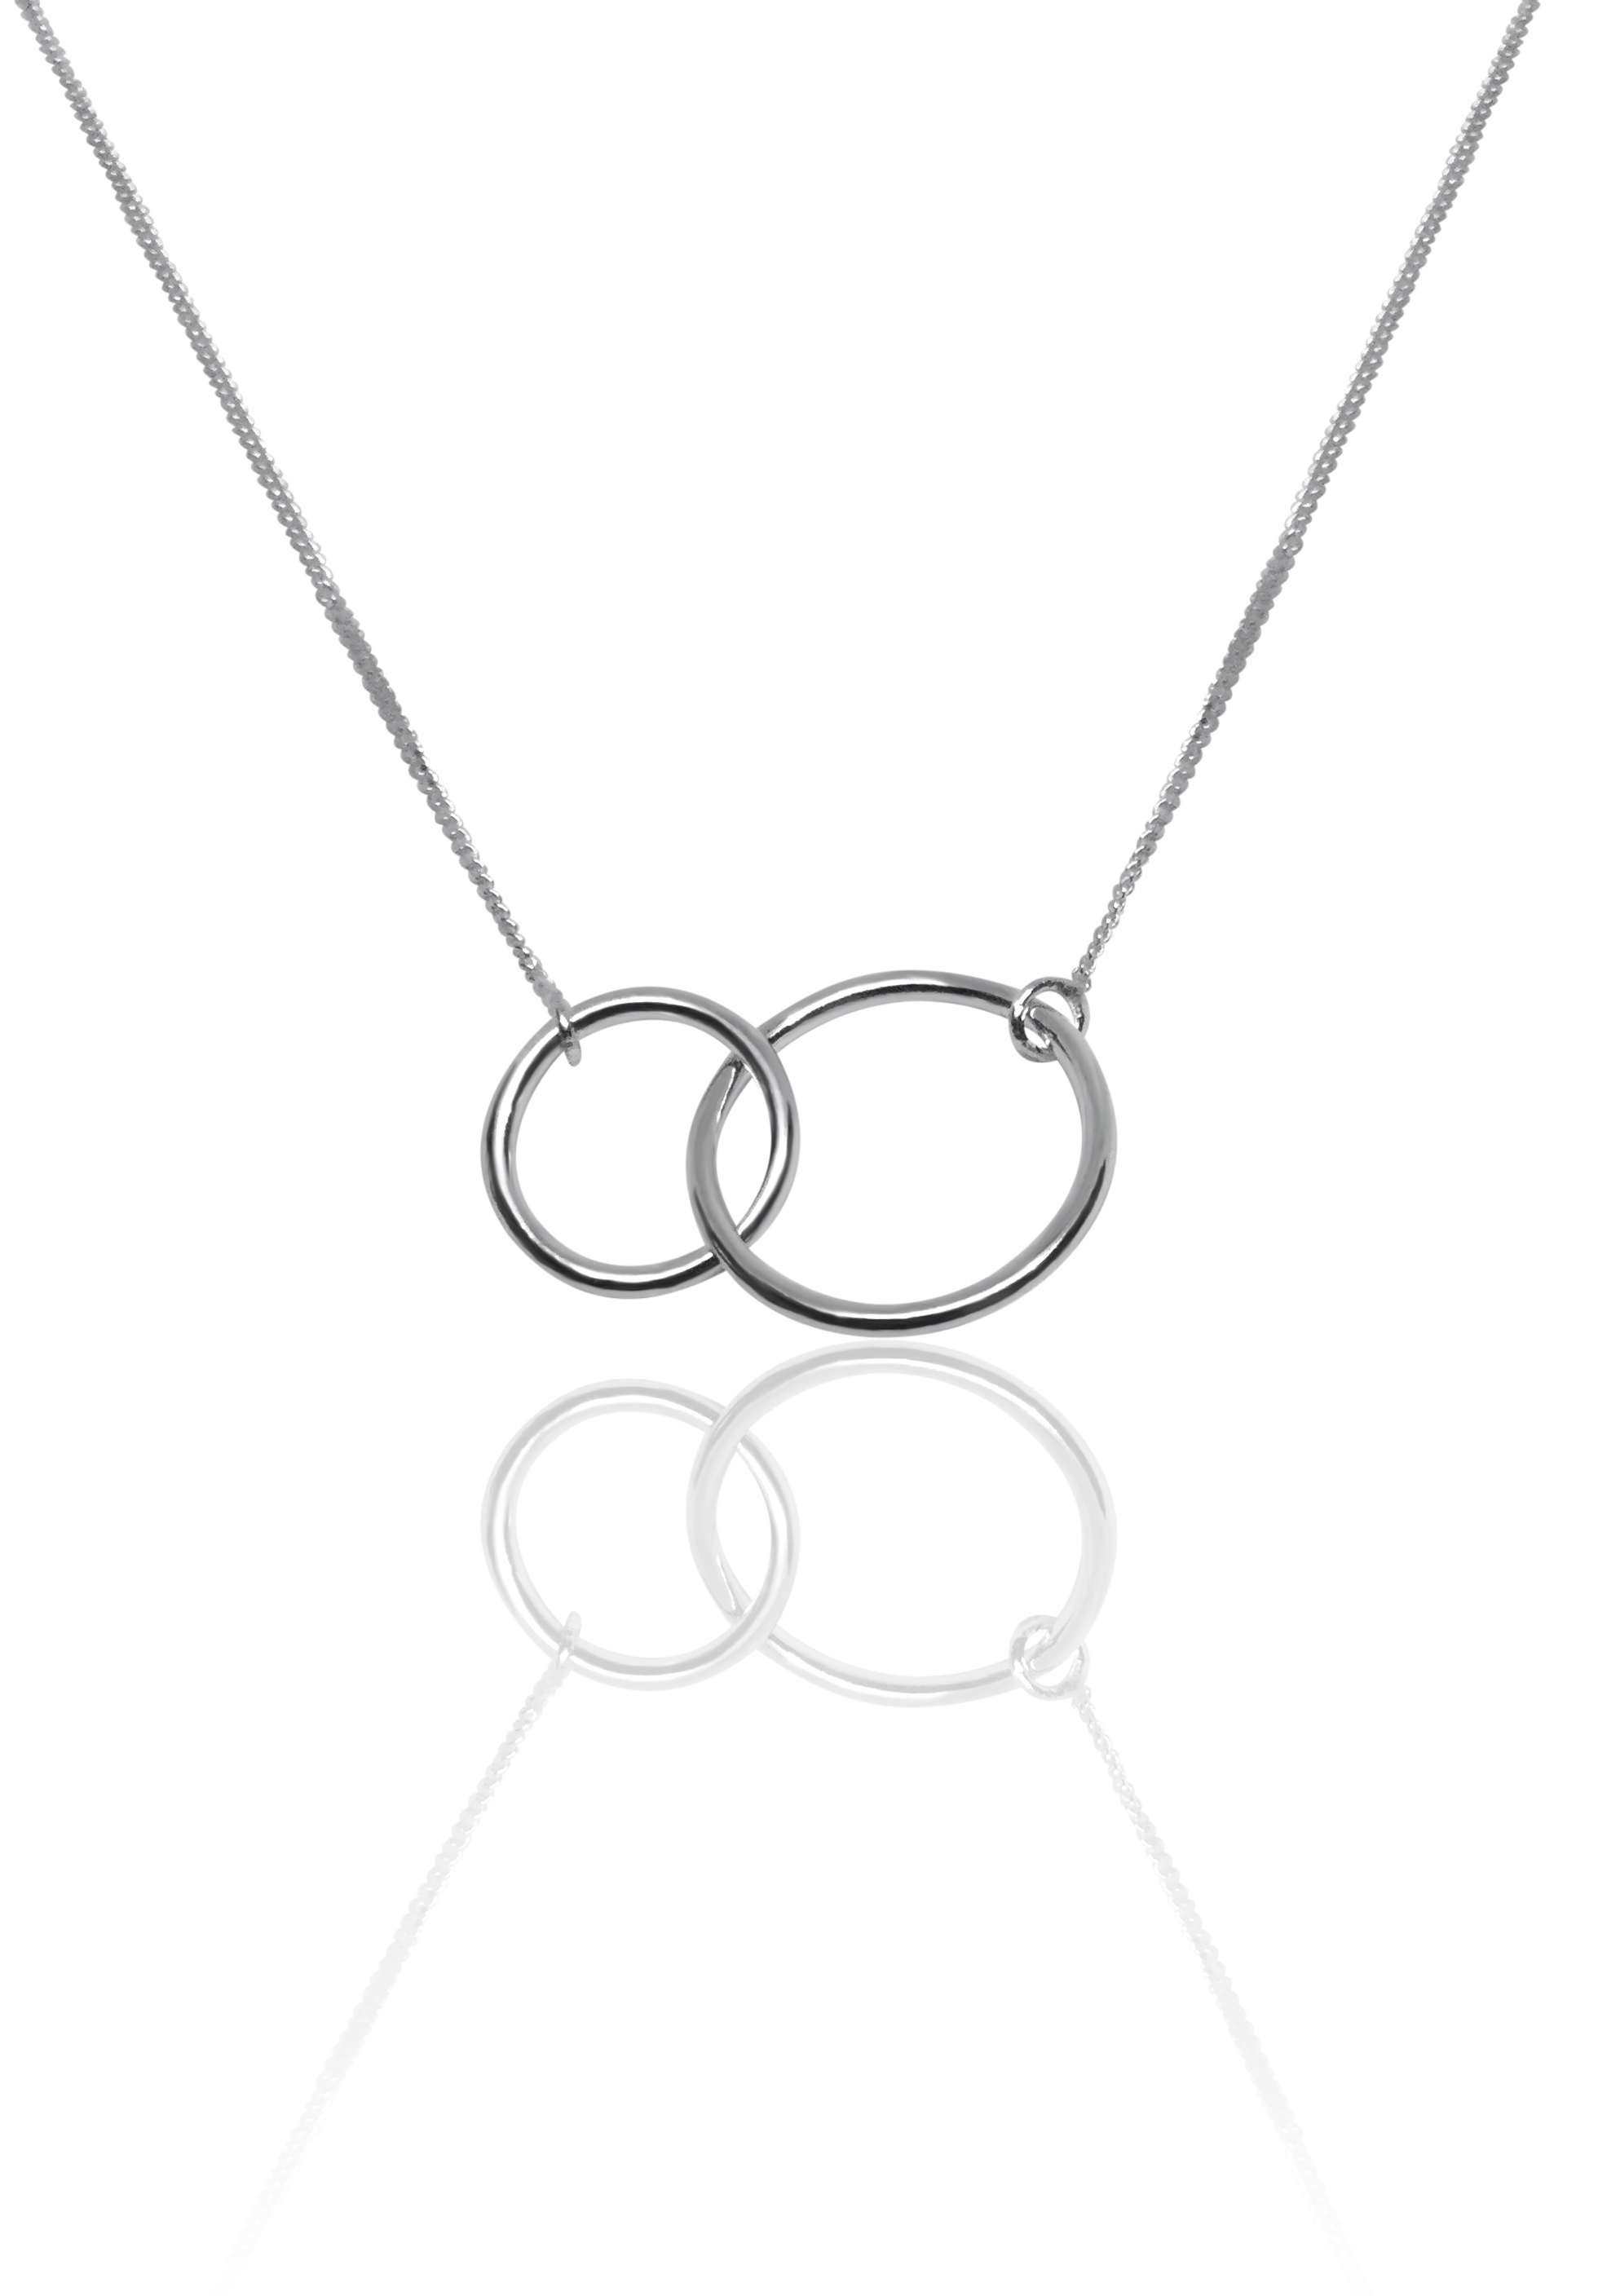 Connection Silver necklace